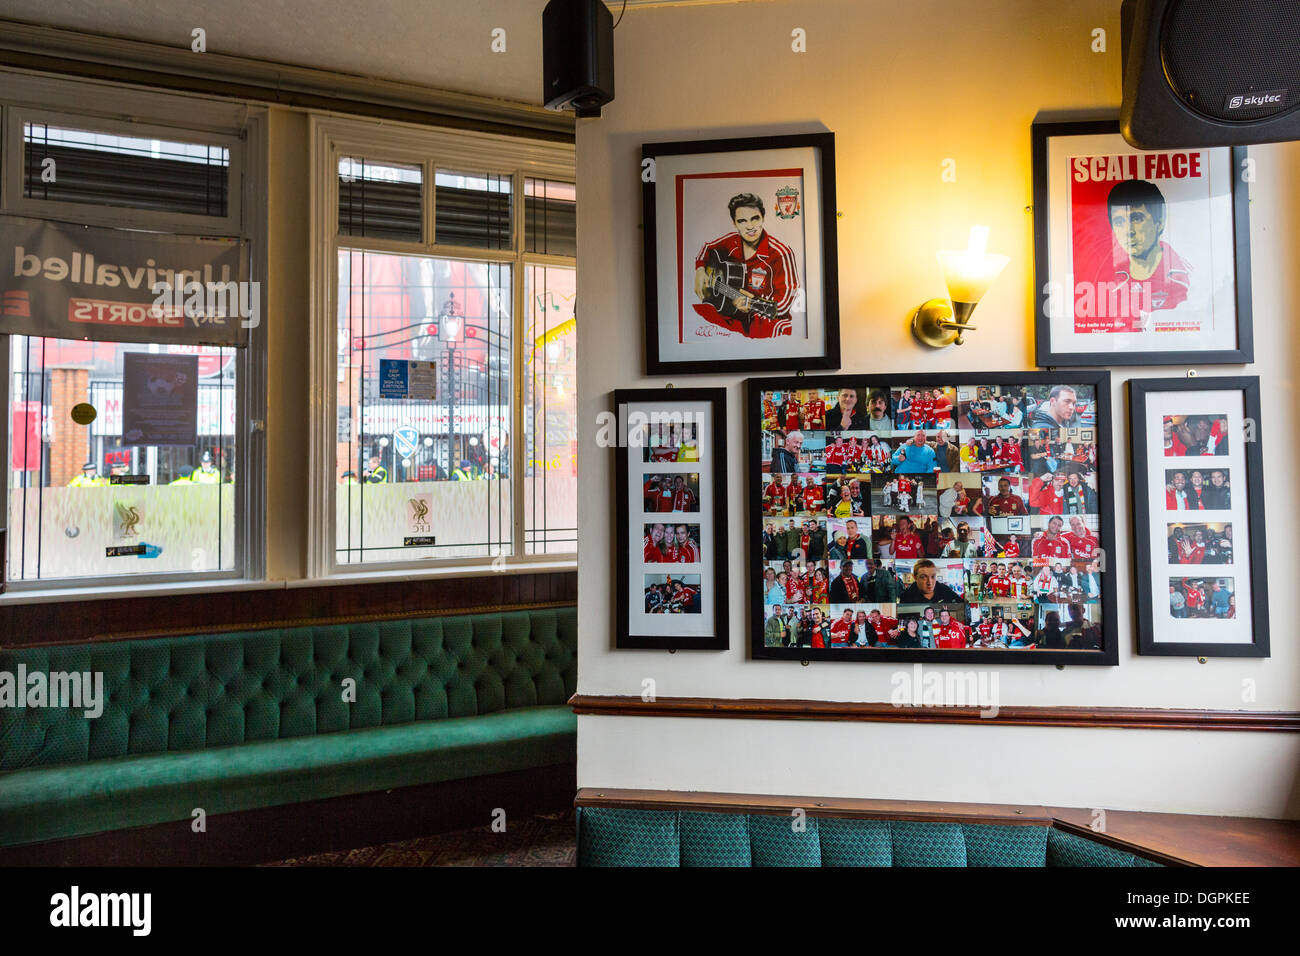 Pictures decorate the walls of The Park public house opposite The Kop, Anfield, Liverpool, UK - Stock Image